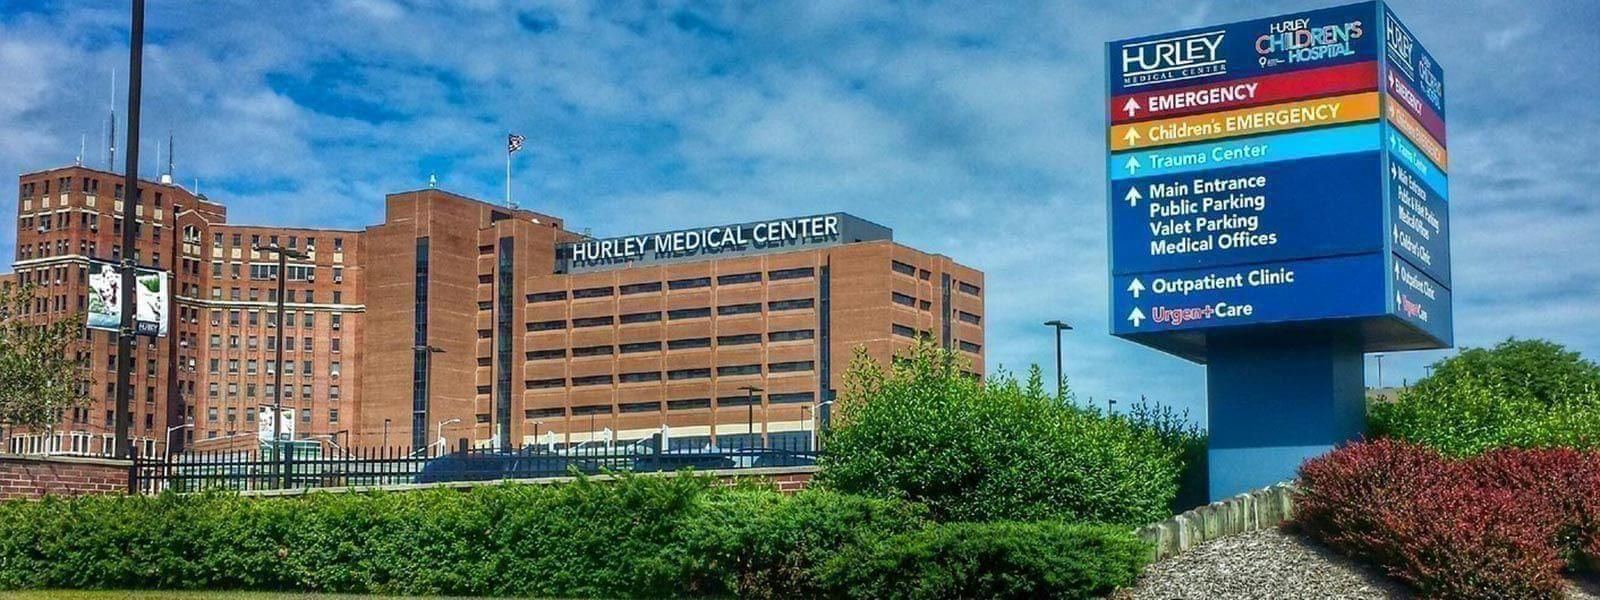 Hurley Medical Center Hurley Medical Center Urgent Care